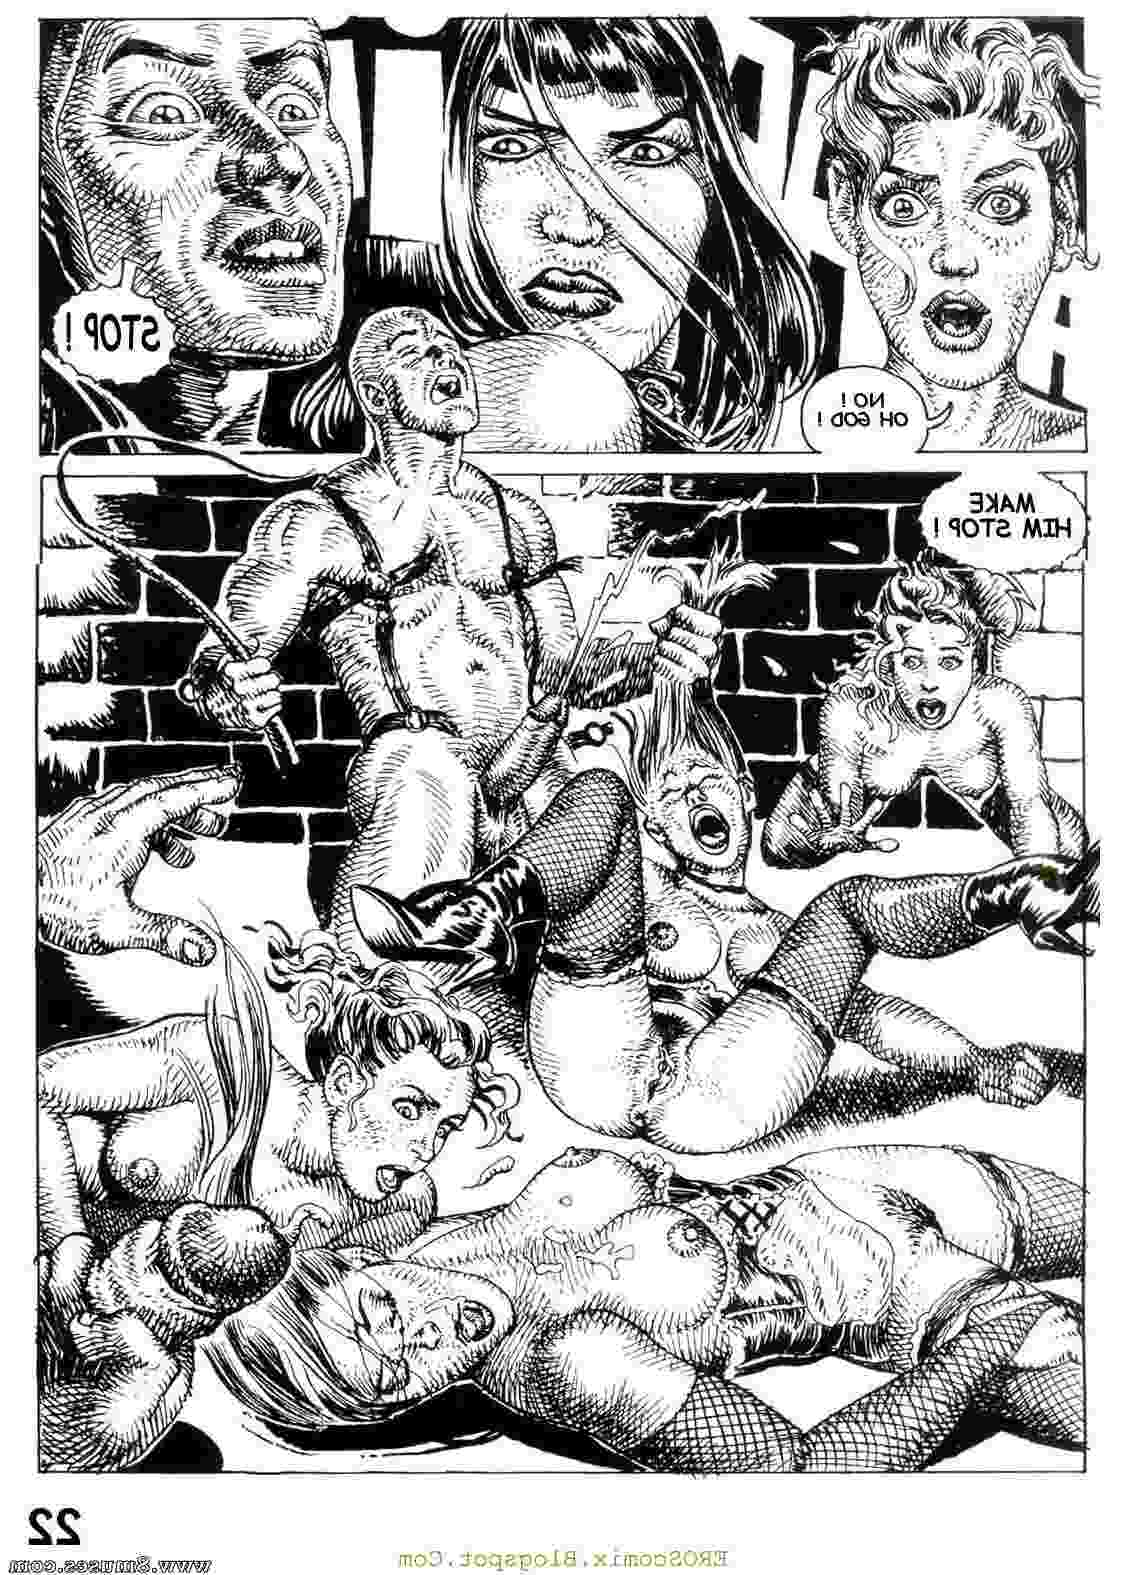 Bruno-Coq-Comics/Secret-Society Secret_Society__8muses_-_Sex_and_Porn_Comics_23.jpg